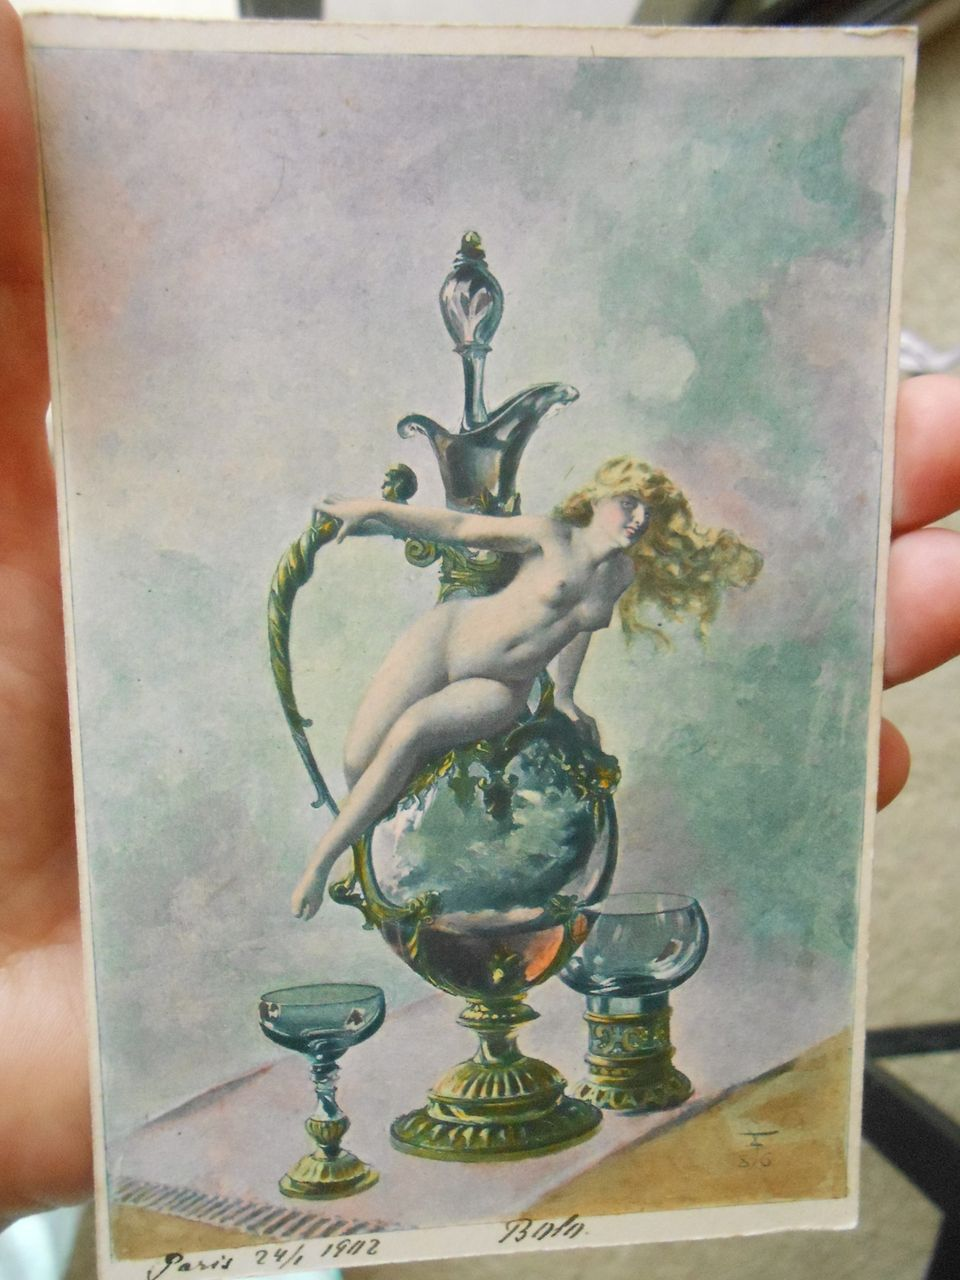 "Artist Signed Nude Lithograph Luis Ricardo Falero ""Wine of Tokai"" from Polish Count's Postcard Collection"